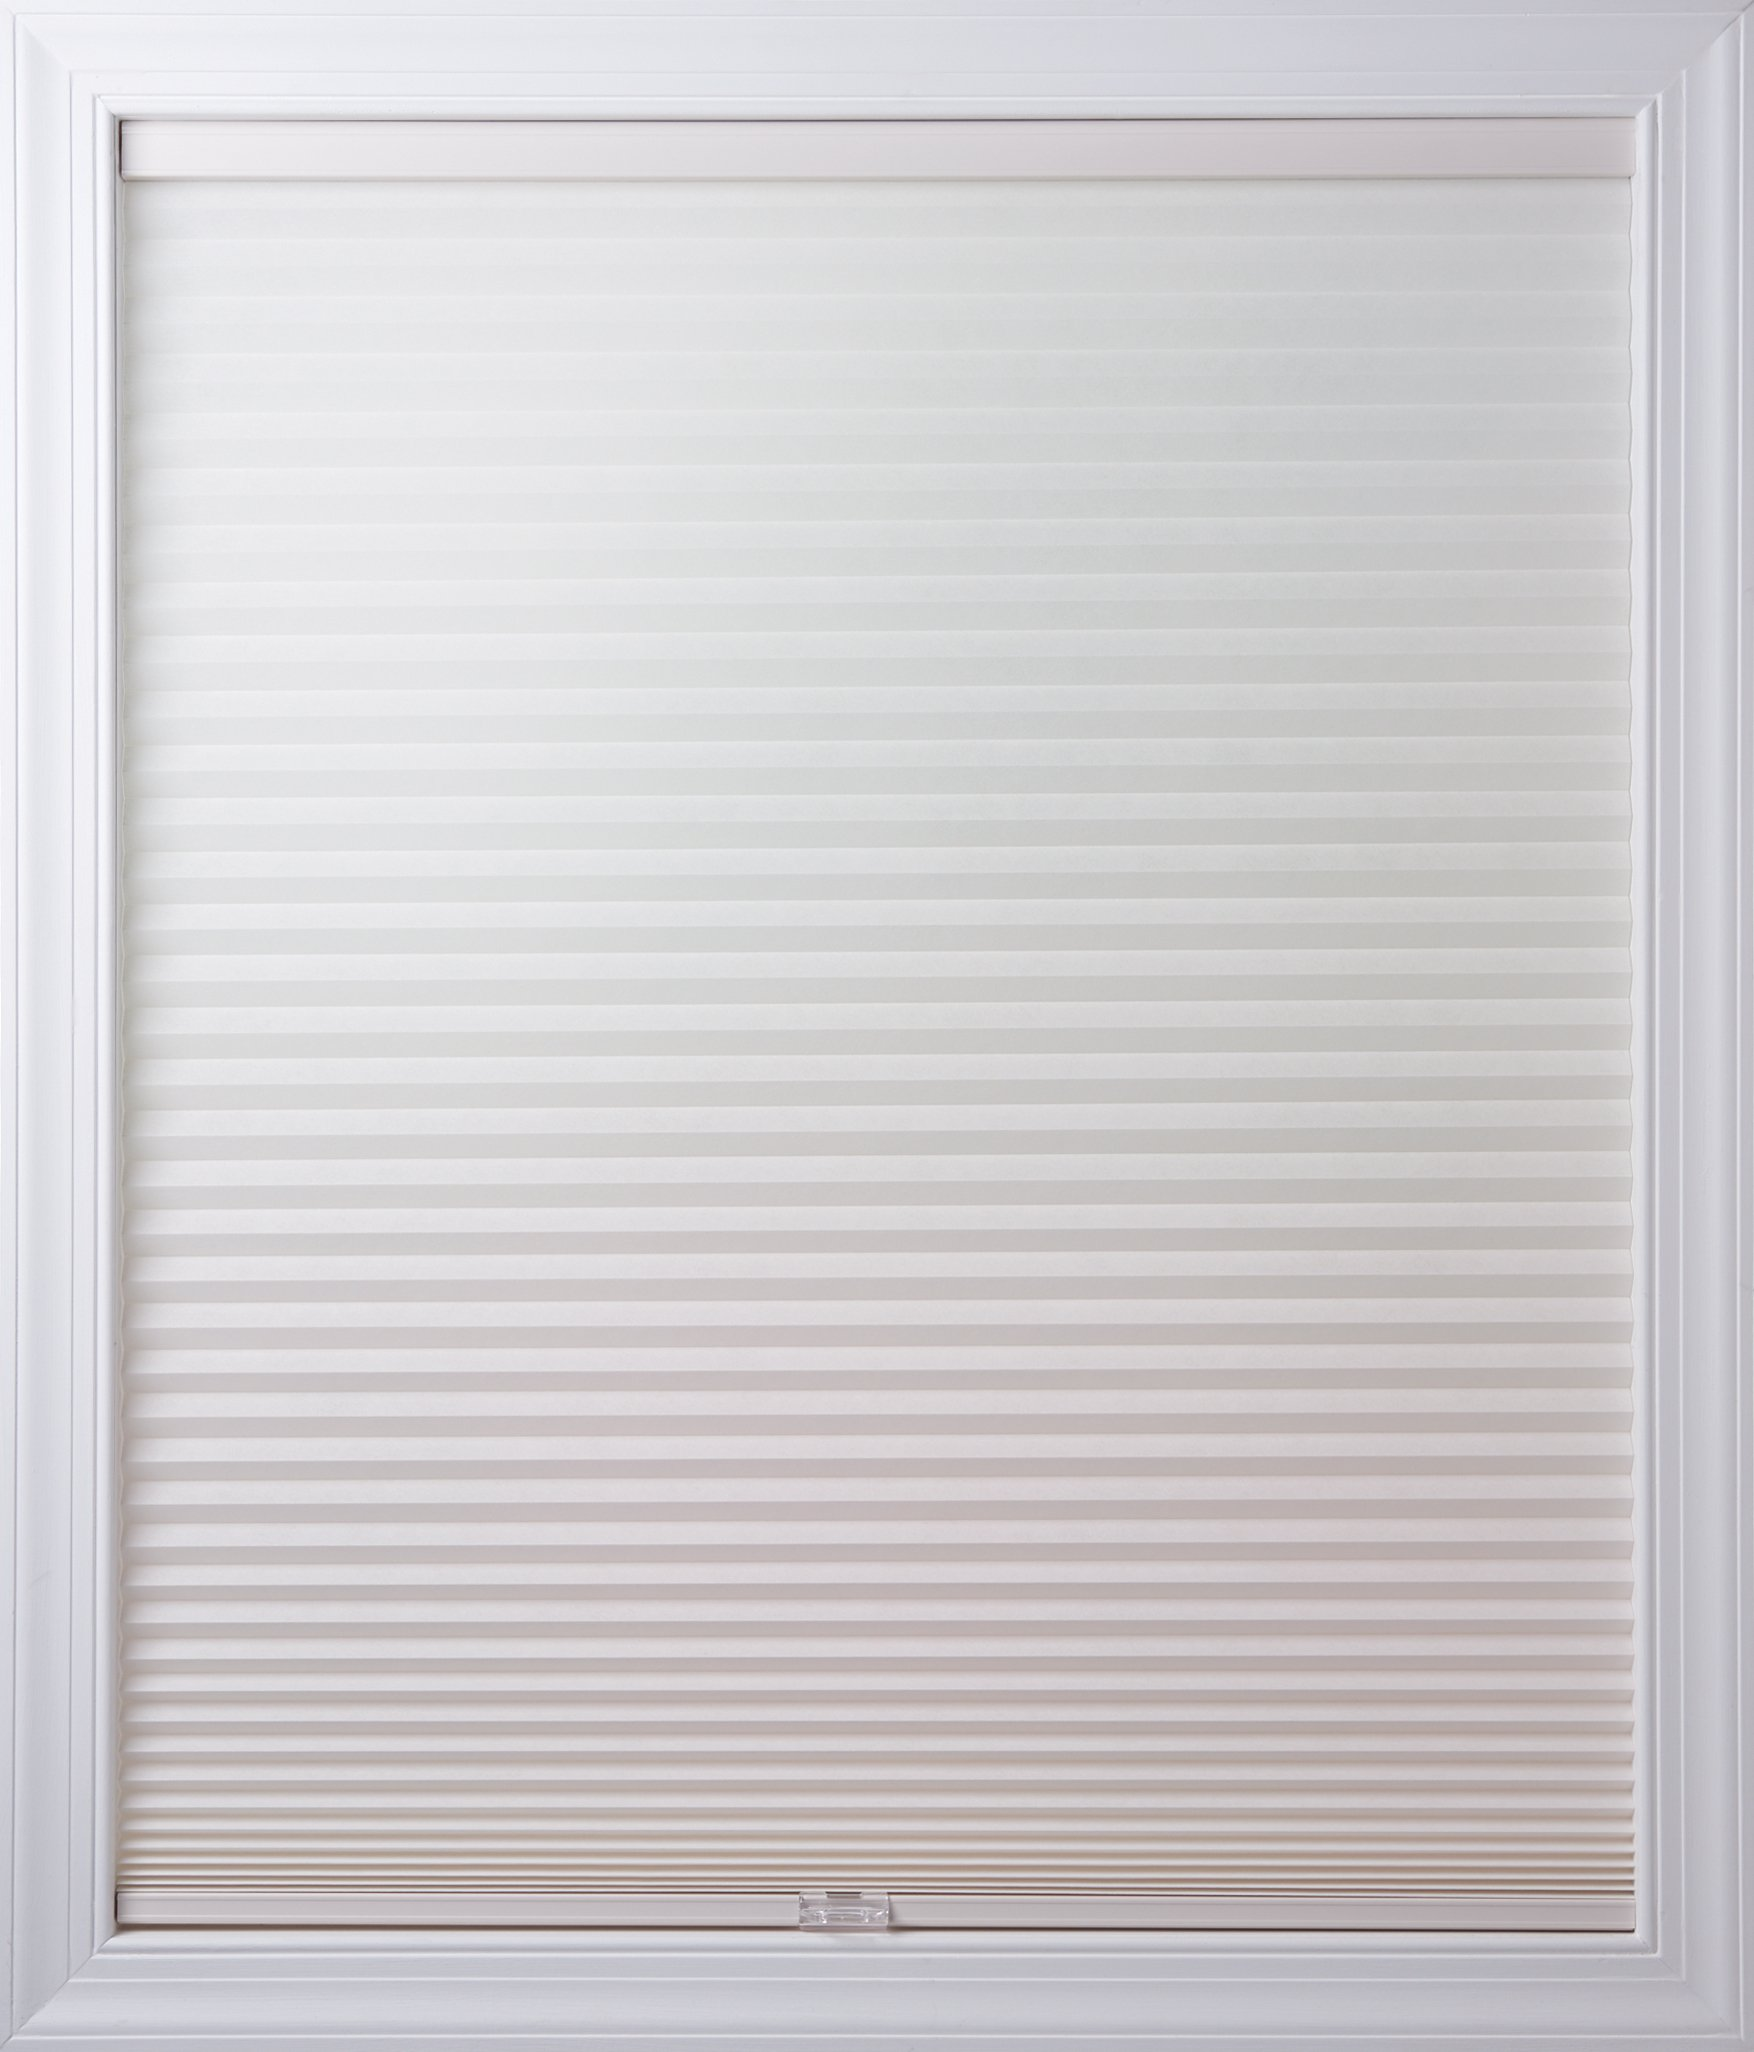 New Age Blinds Light Filtering Inside Frame Mount Cordless Cellular Shade 37-1/2 x 48-Inch White Dove by New Age Blinds